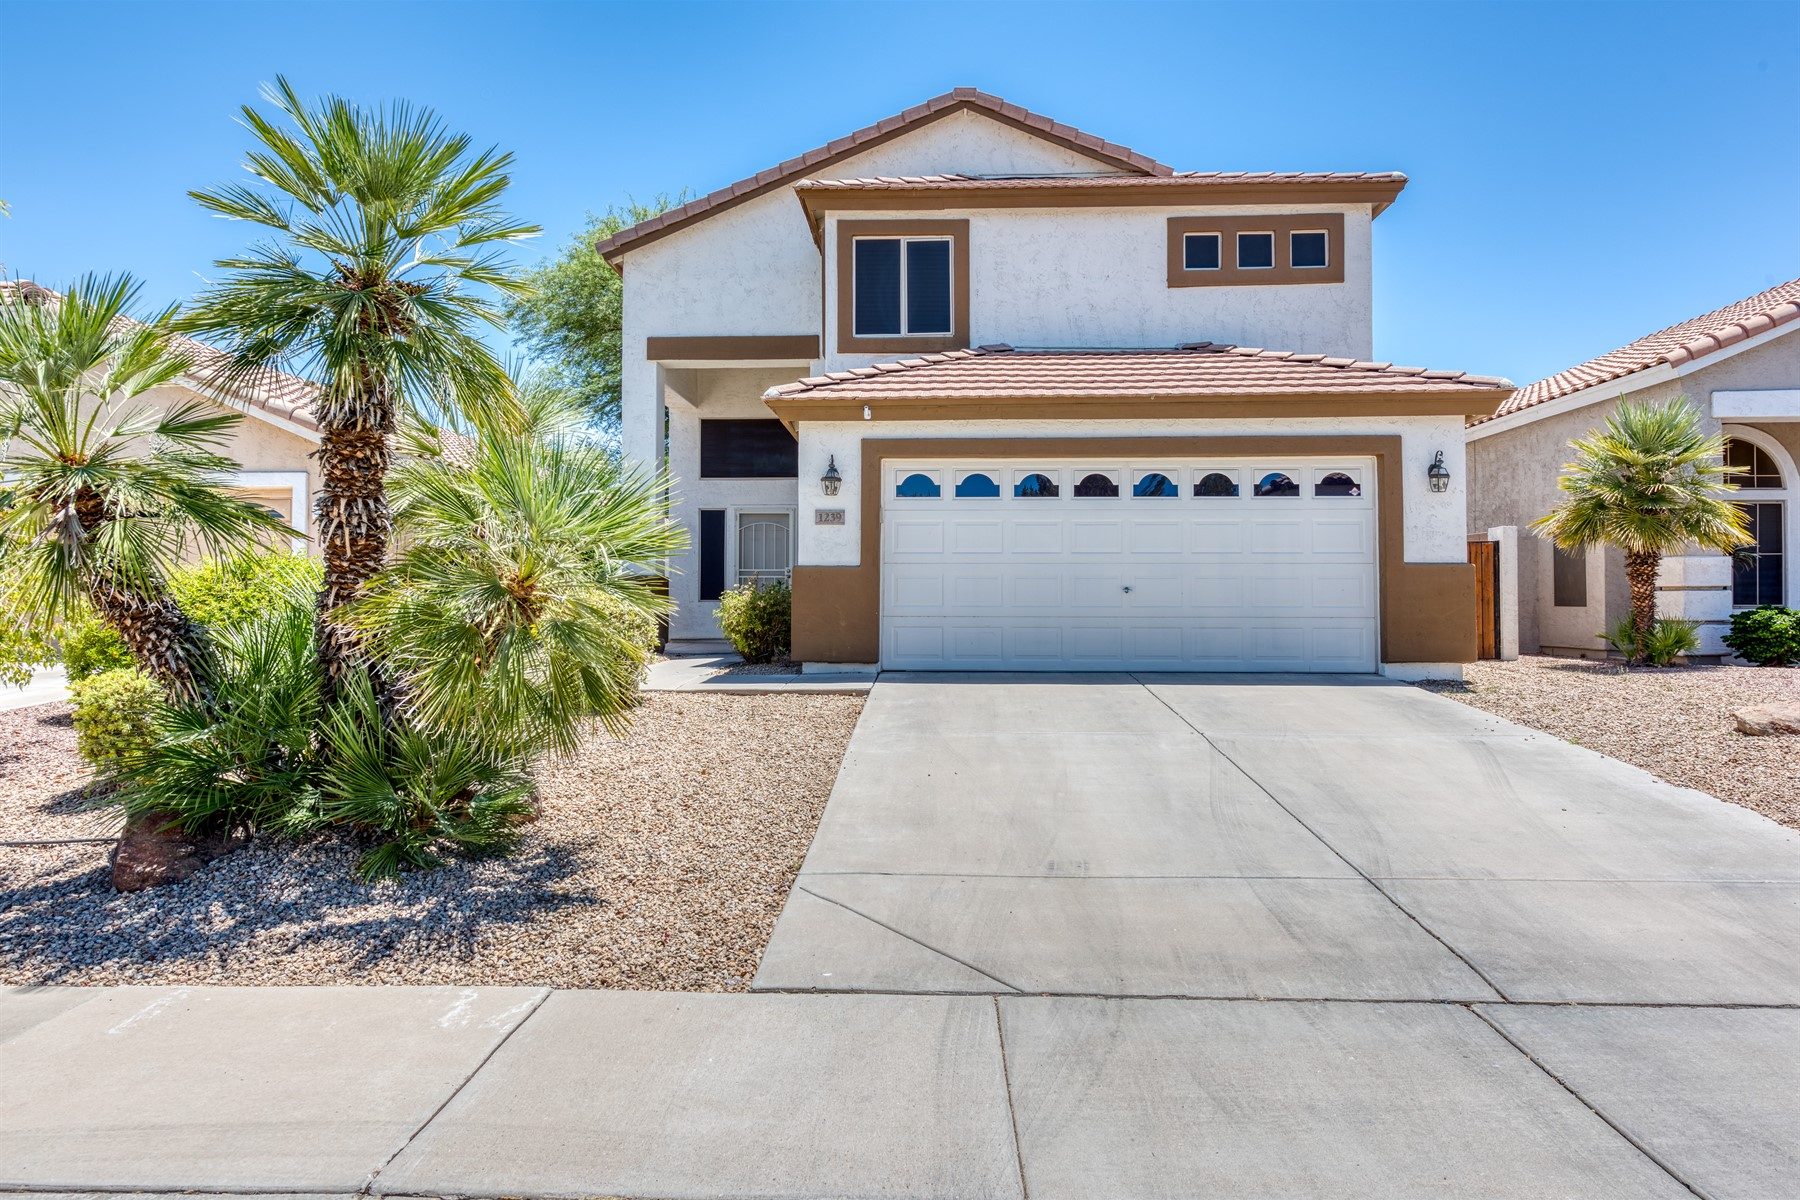 Single Family Homes for Sale at Lindsay Ranch 1239 S COLONIAL DR Gilbert, Arizona 85296 United States